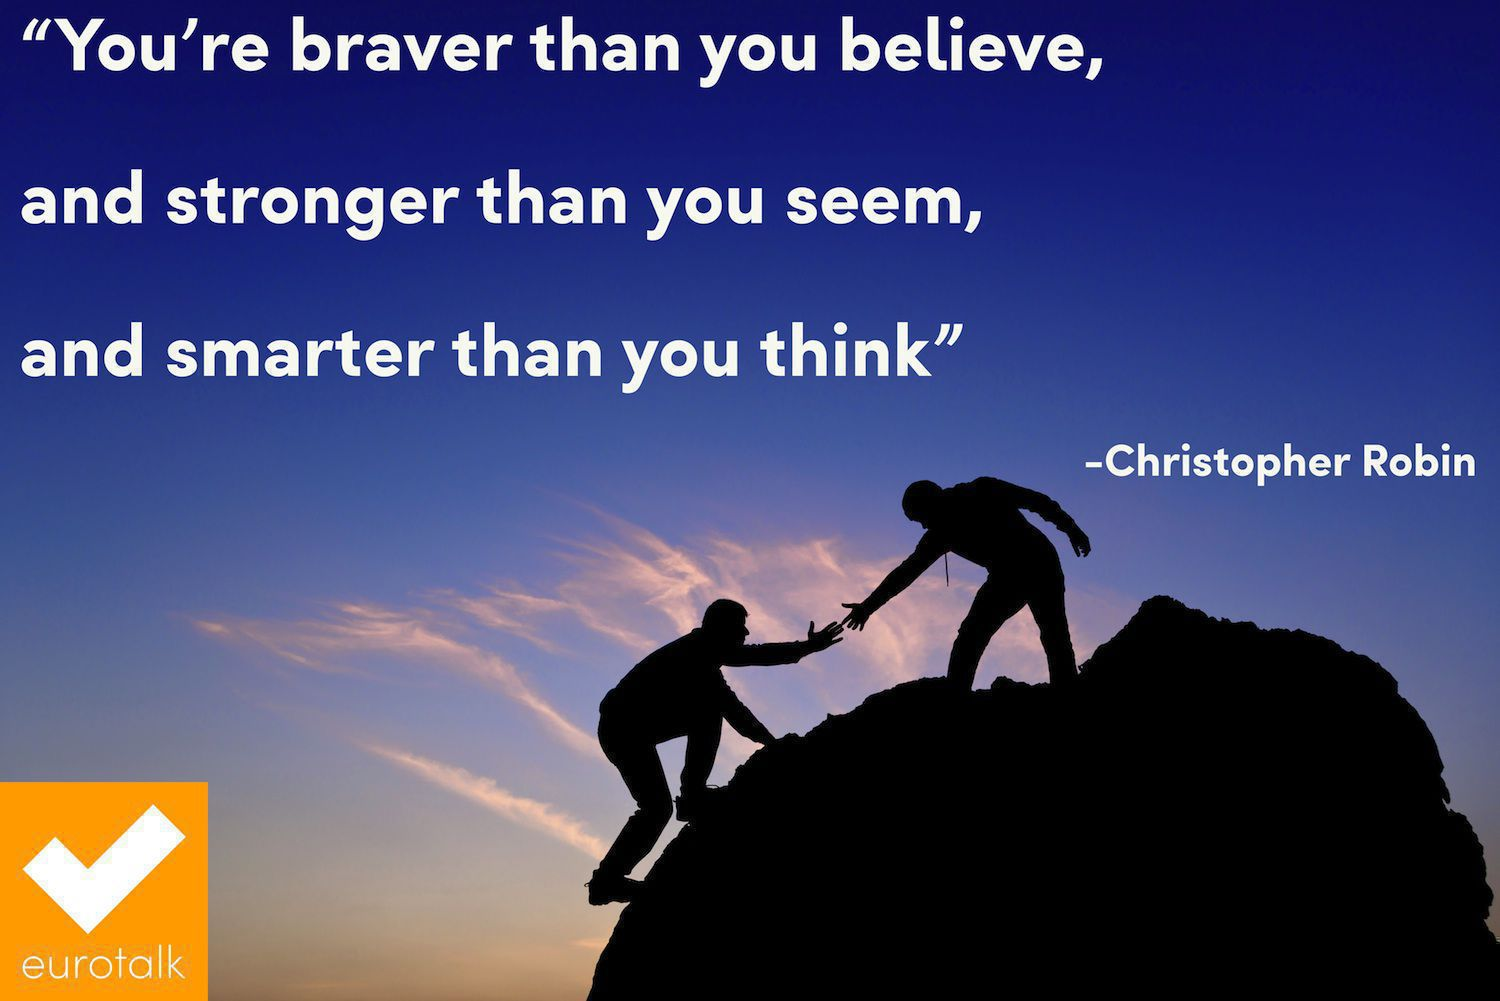 Christopher Robin Quotes Stronger Than You Think